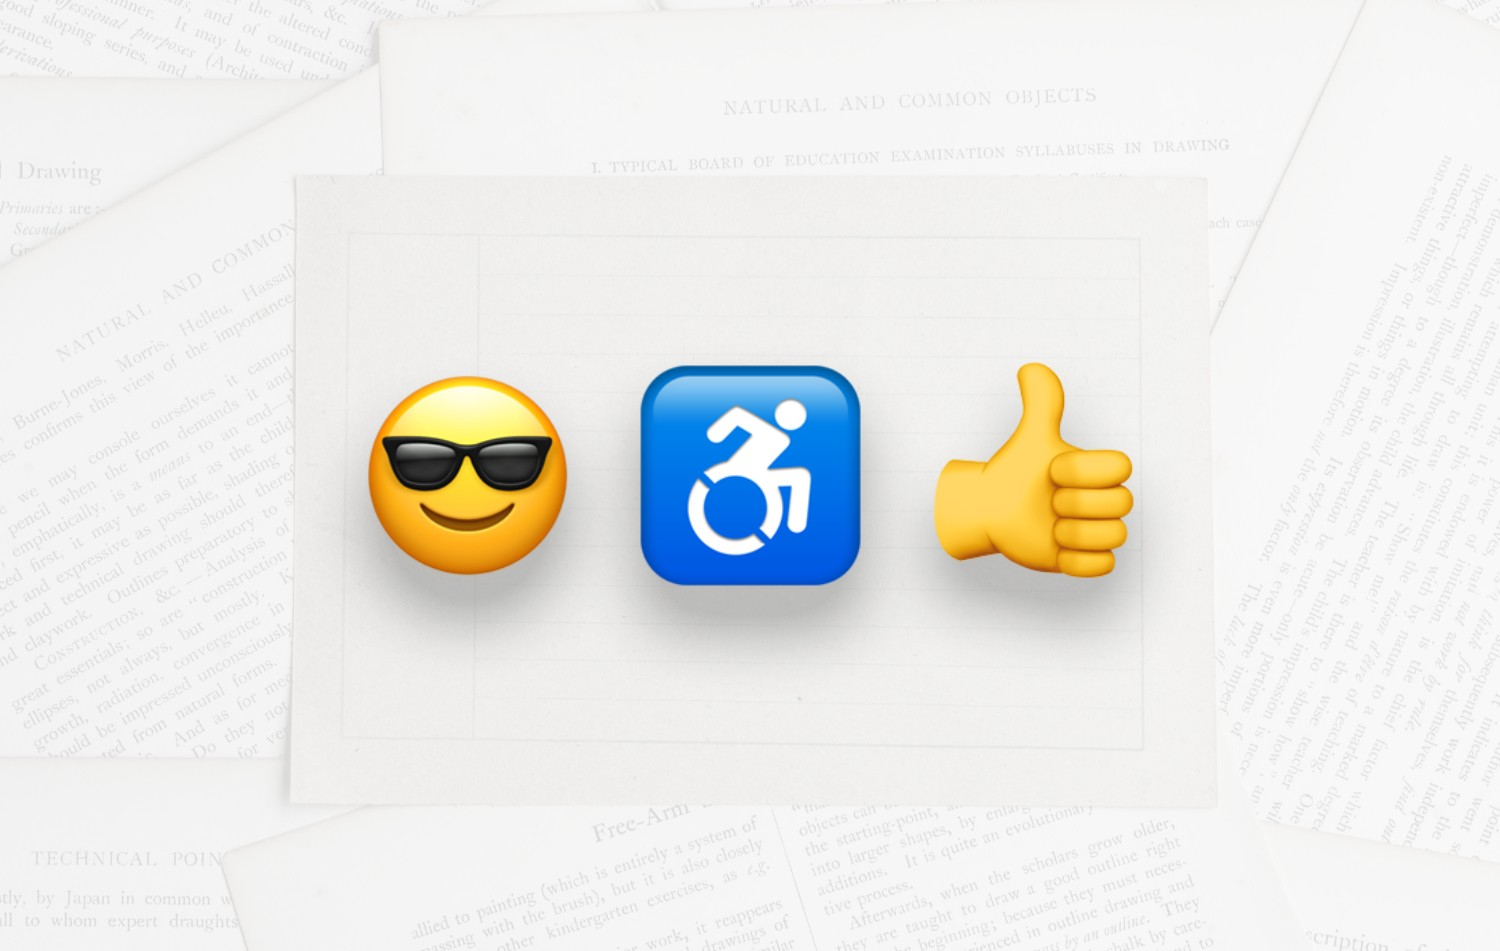 Emojis with smiling face and sunglasses along with accessibility emoji of person using a wheelchair and a thumbs up emoji.